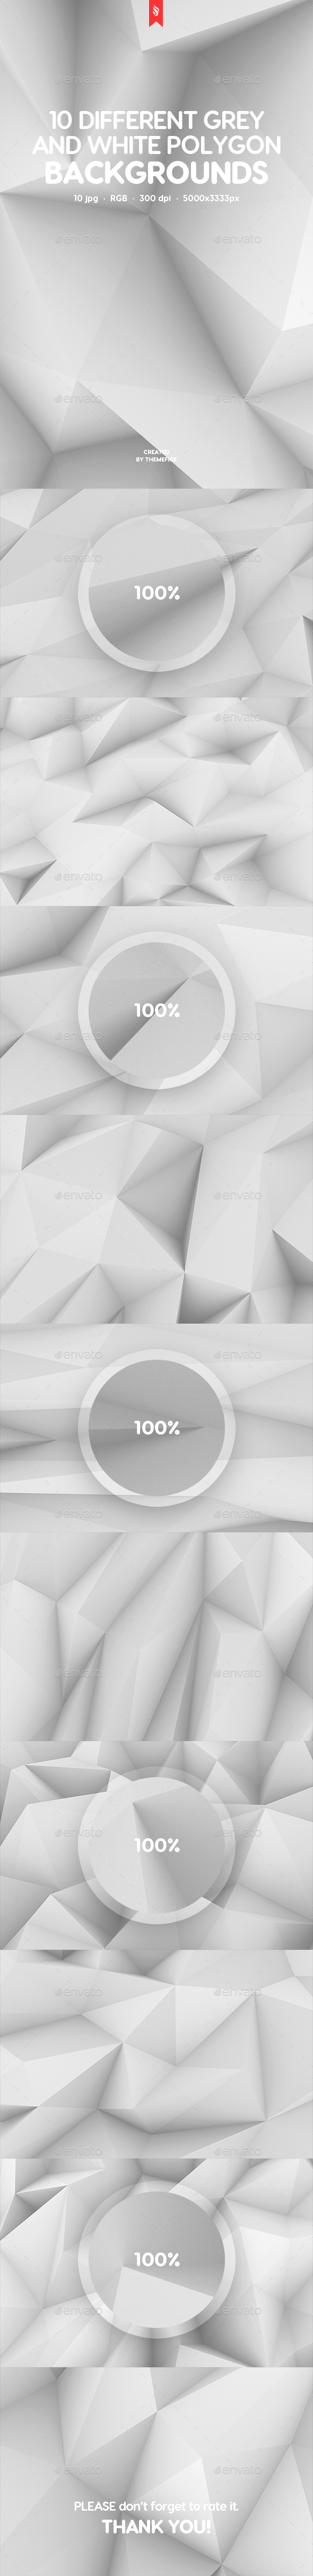 10 Different Grey and White Polygon Backgrounds - Abstract Backgrounds